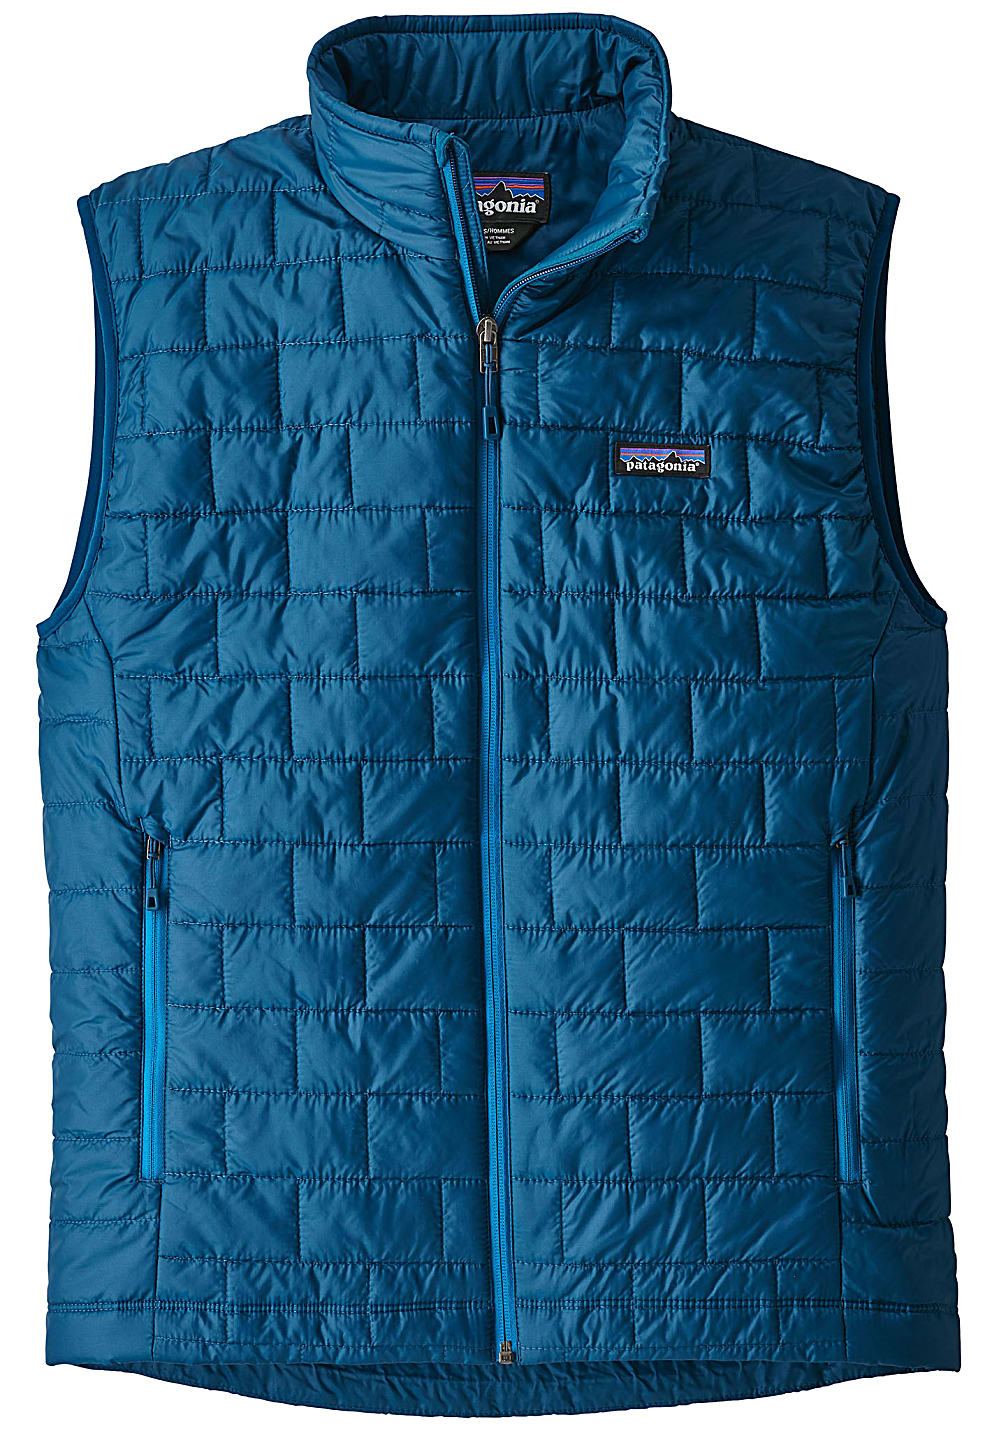 Pour Gilet Homme Rouge Patagonia Planet Sports Down NPXZn0w8kO